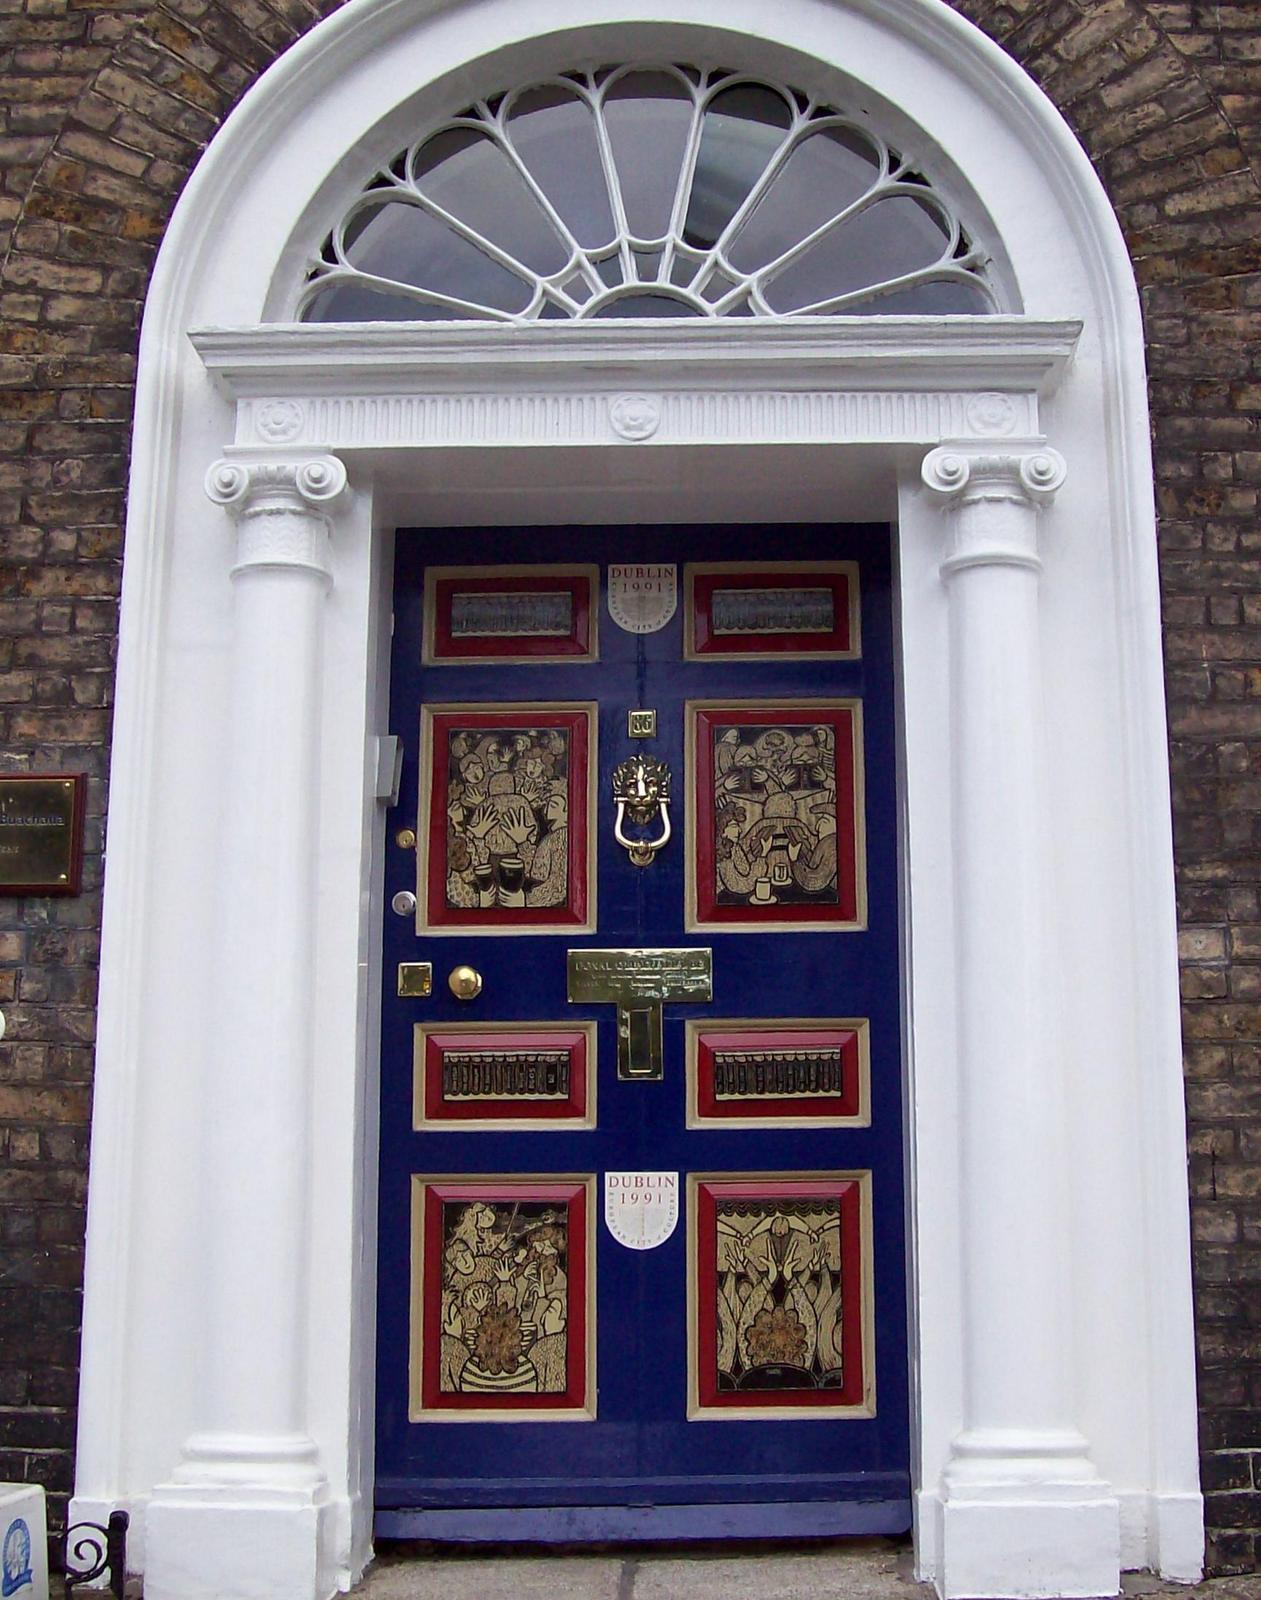 Haustür am Merrion Square